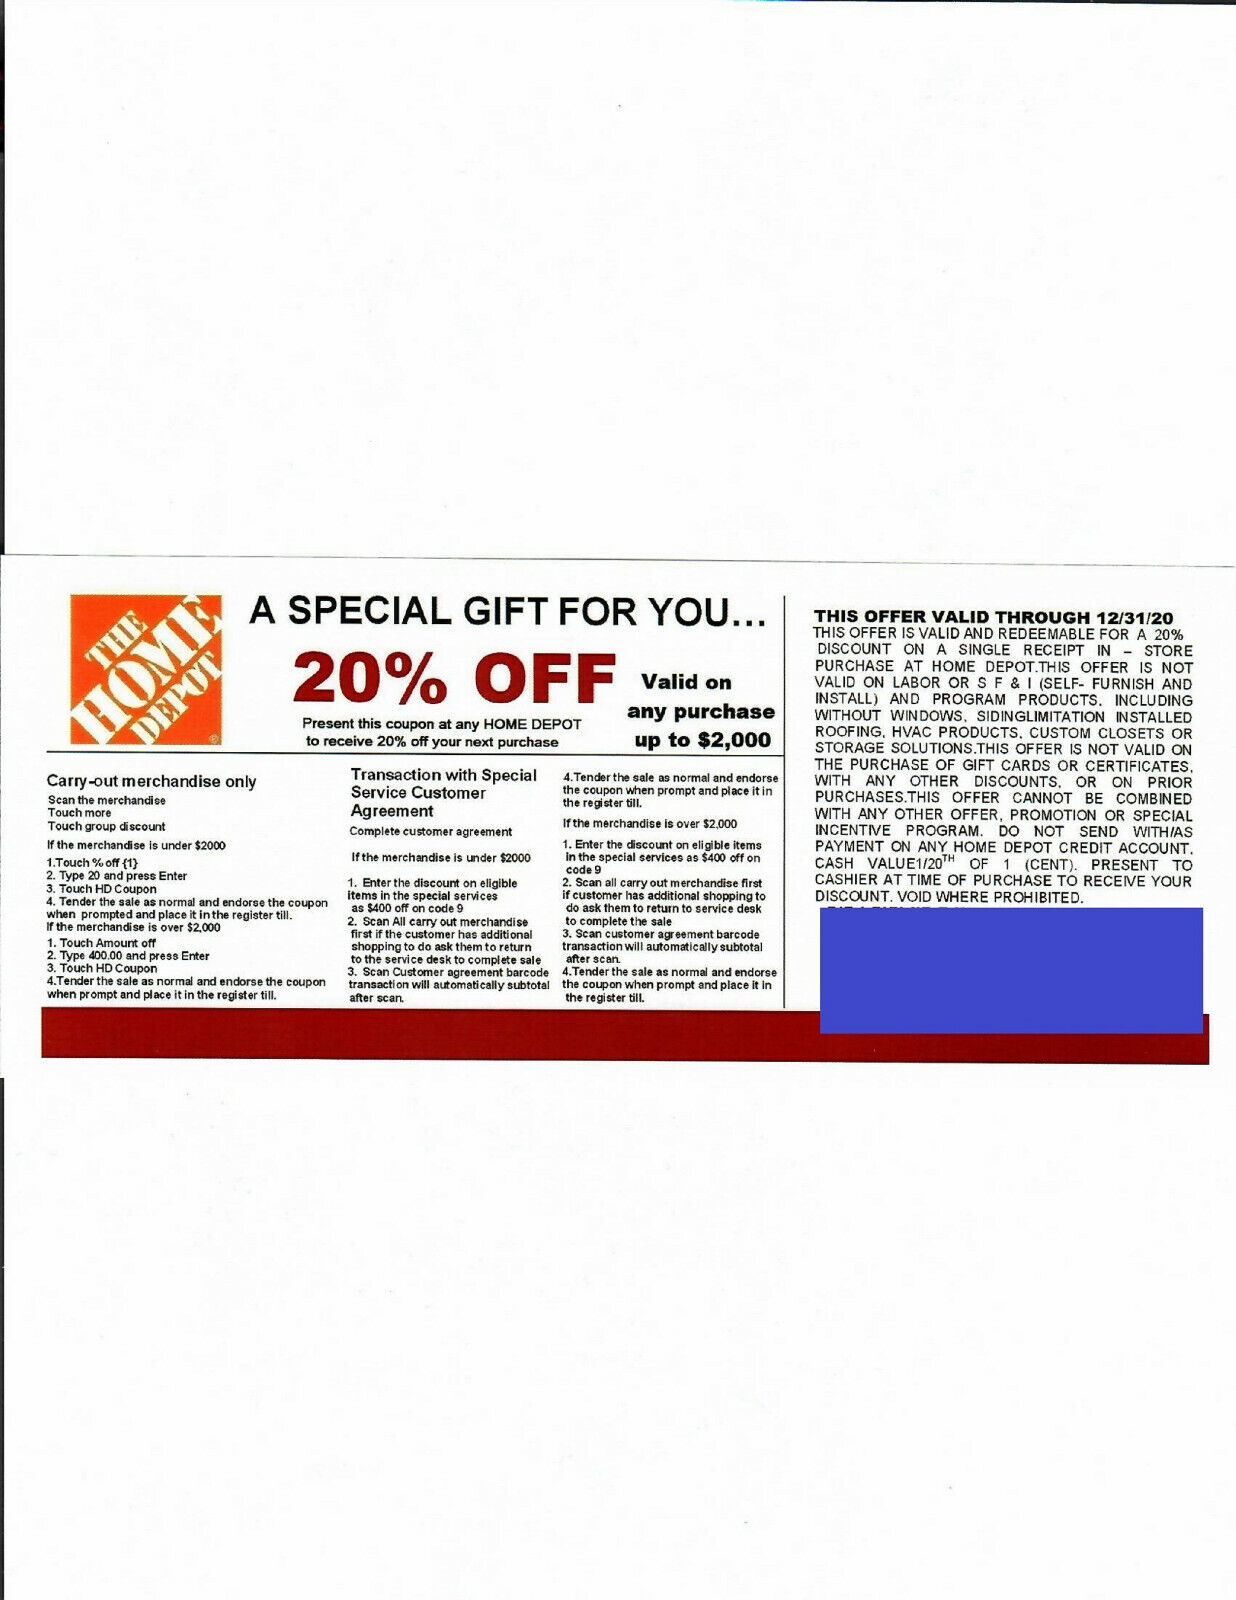 4 20 OFF HOME DEPOT Competitors Coupon To Use At Lowe s Expires 12/31/20 - $41.00